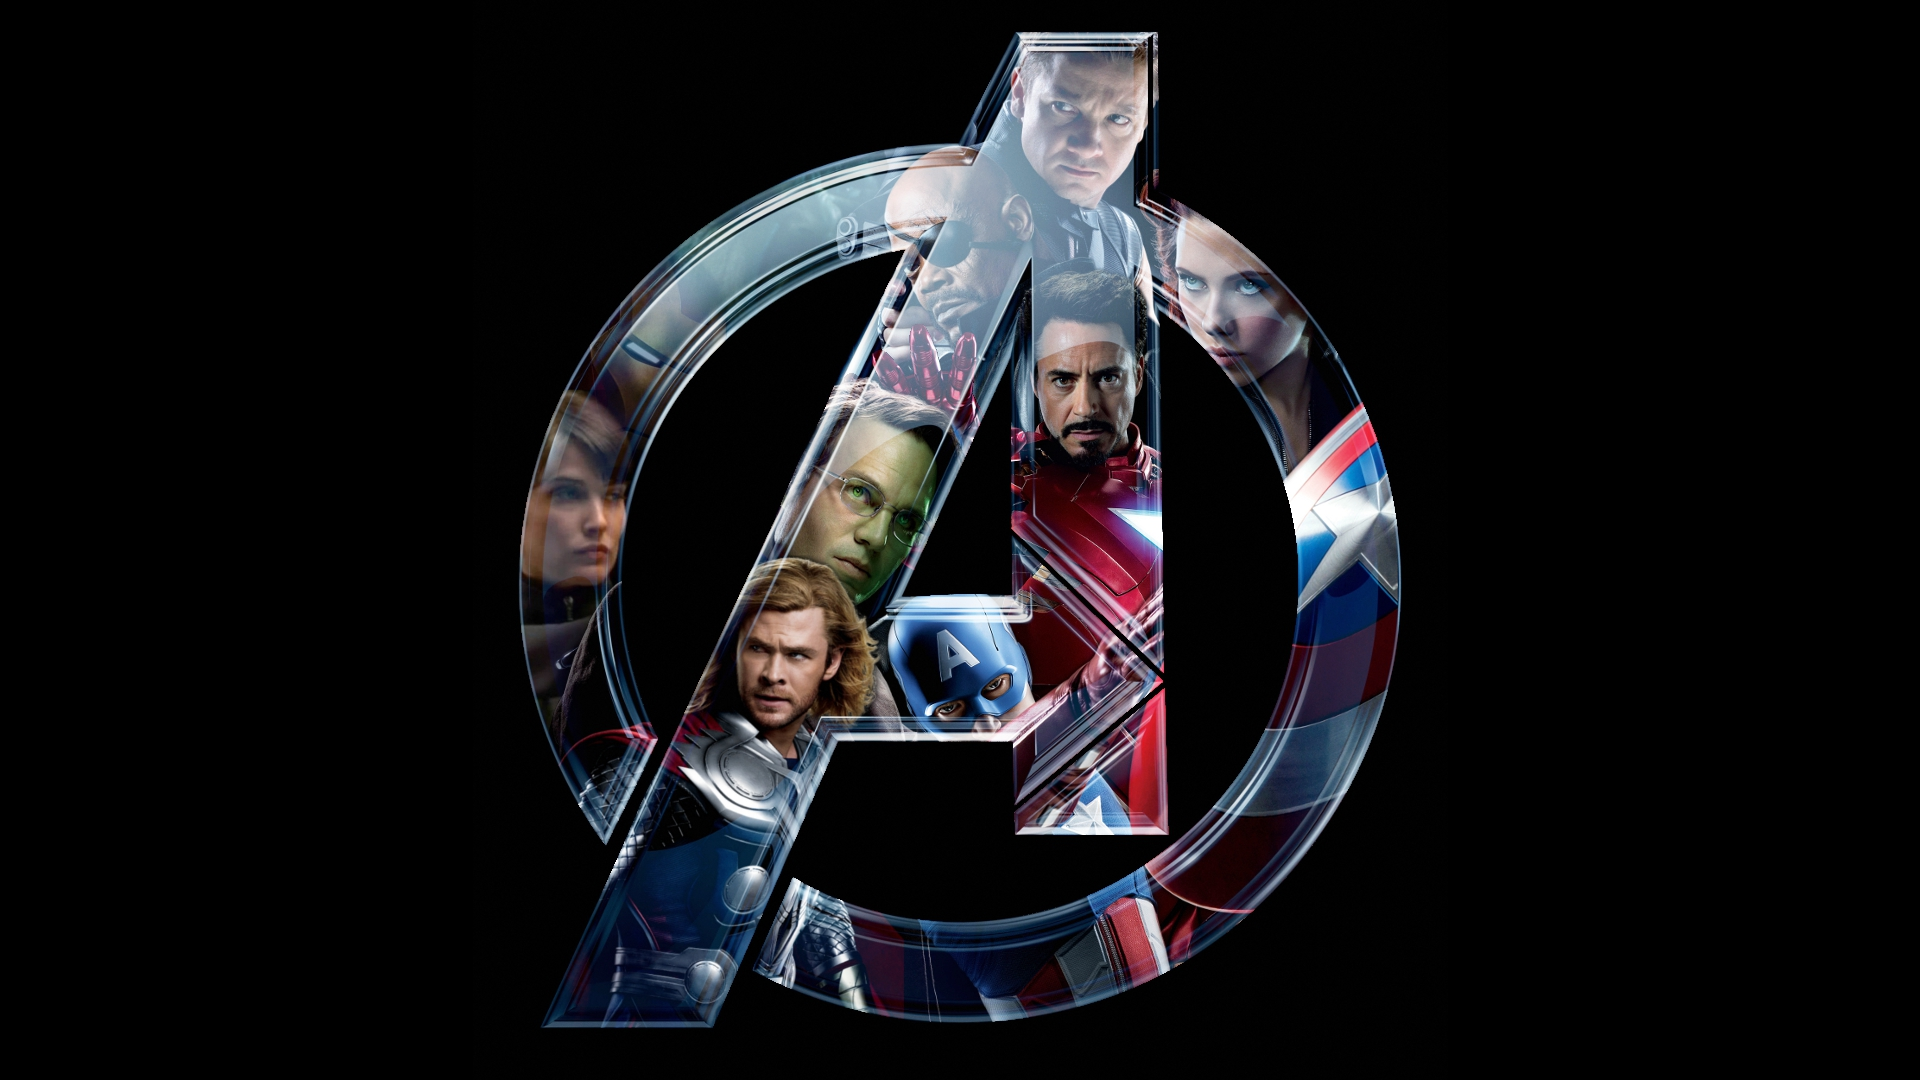 Faces of the Avengers